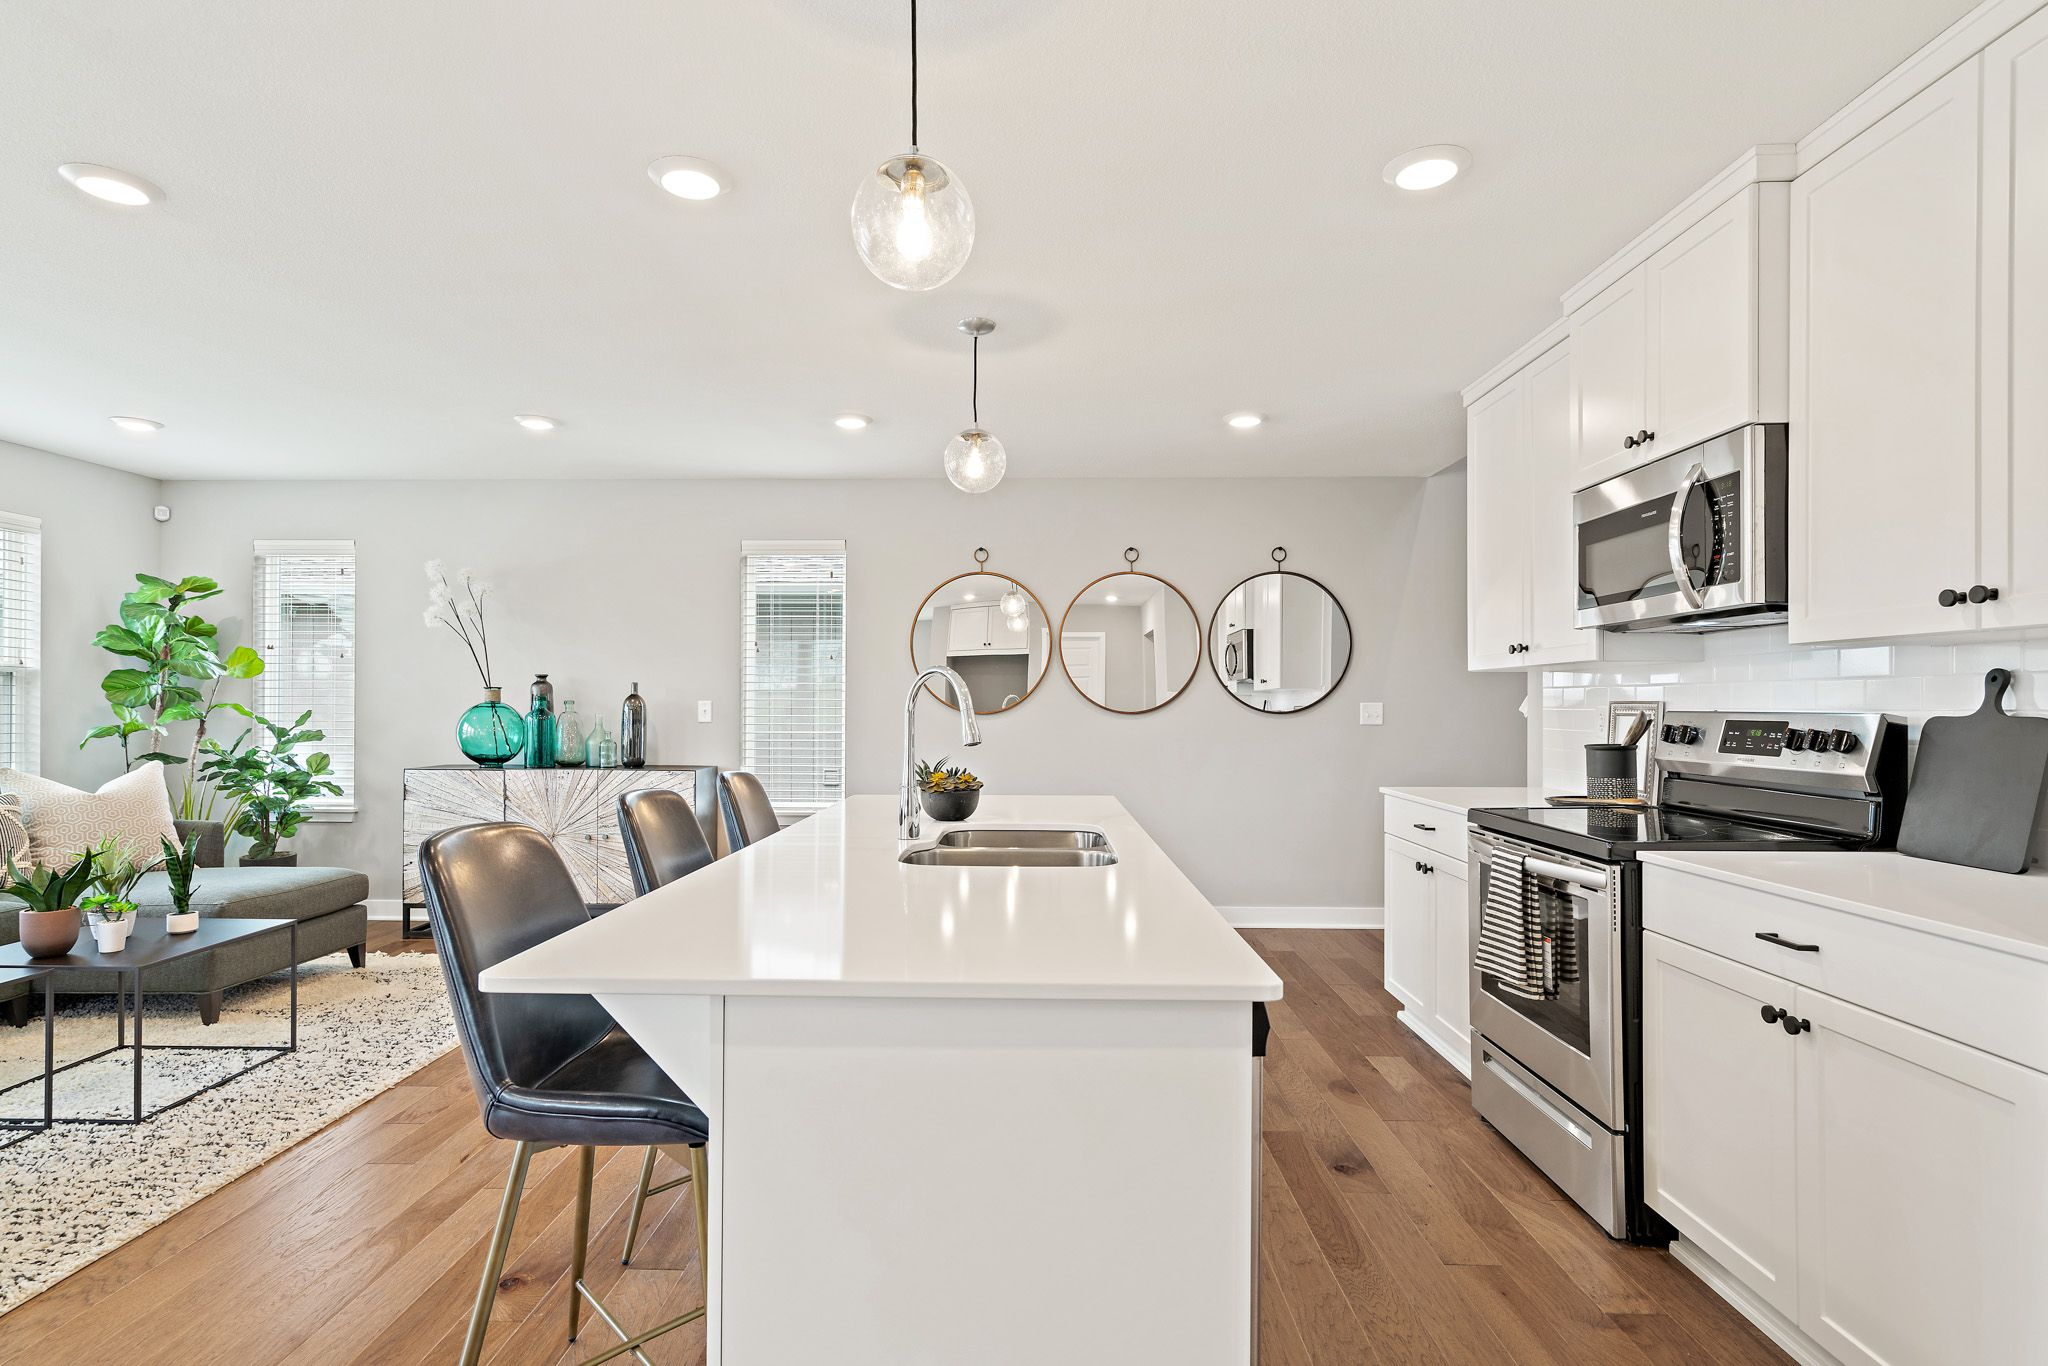 Kitchen featured in the honeydew - contemporary By clover & hive in Kansas City, MO